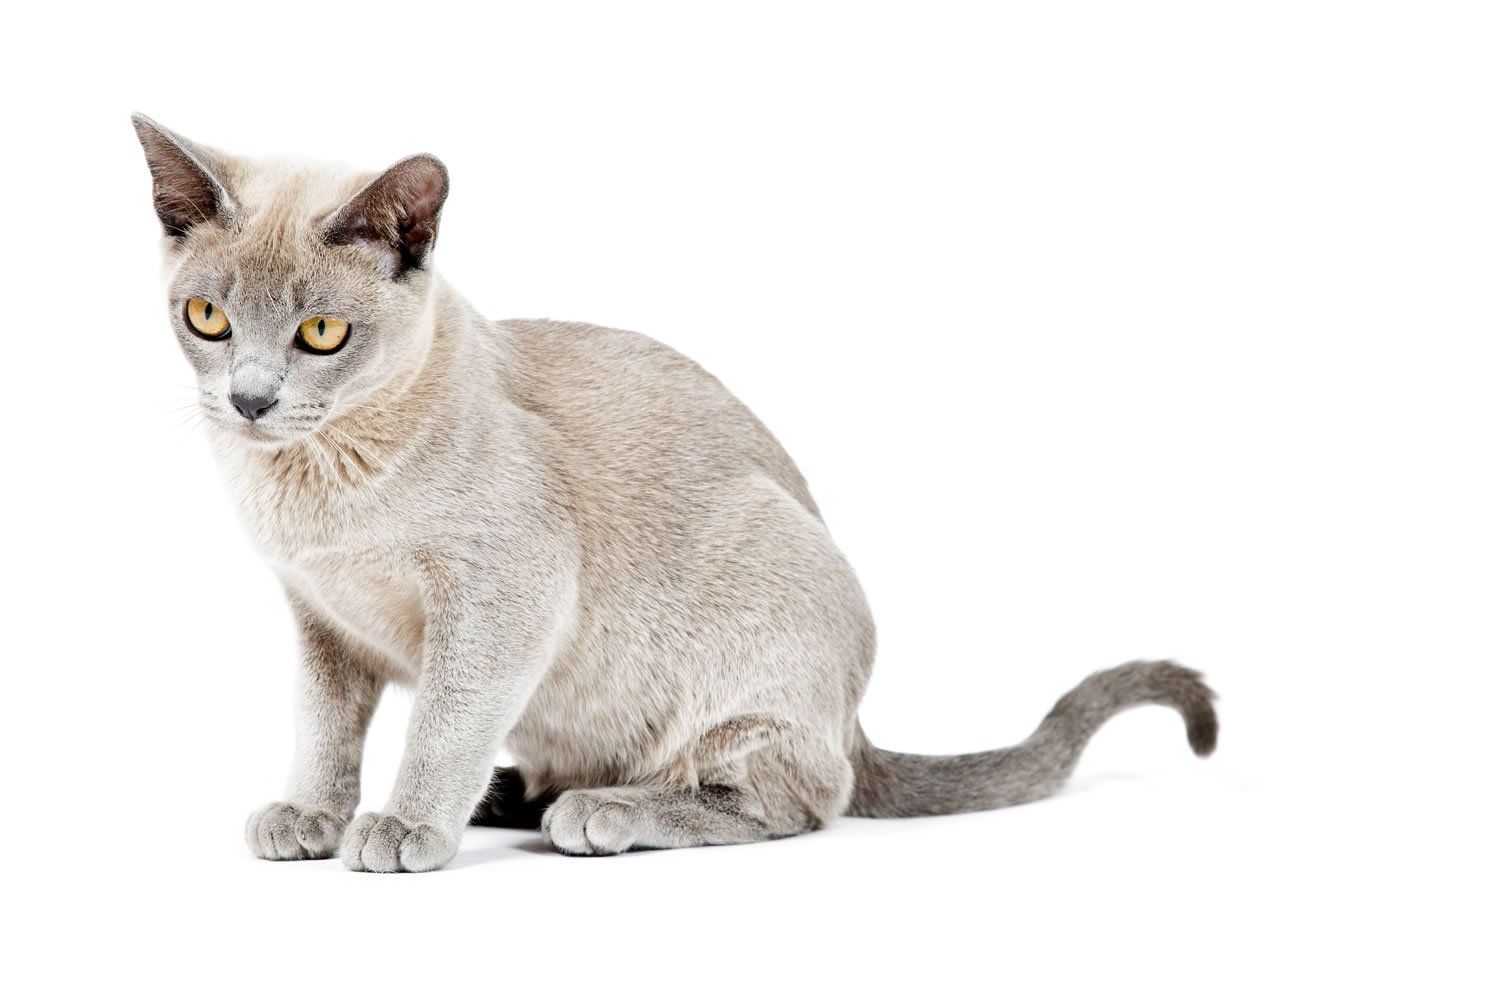 Cat breeds the Burmese Cat characteristics and personality